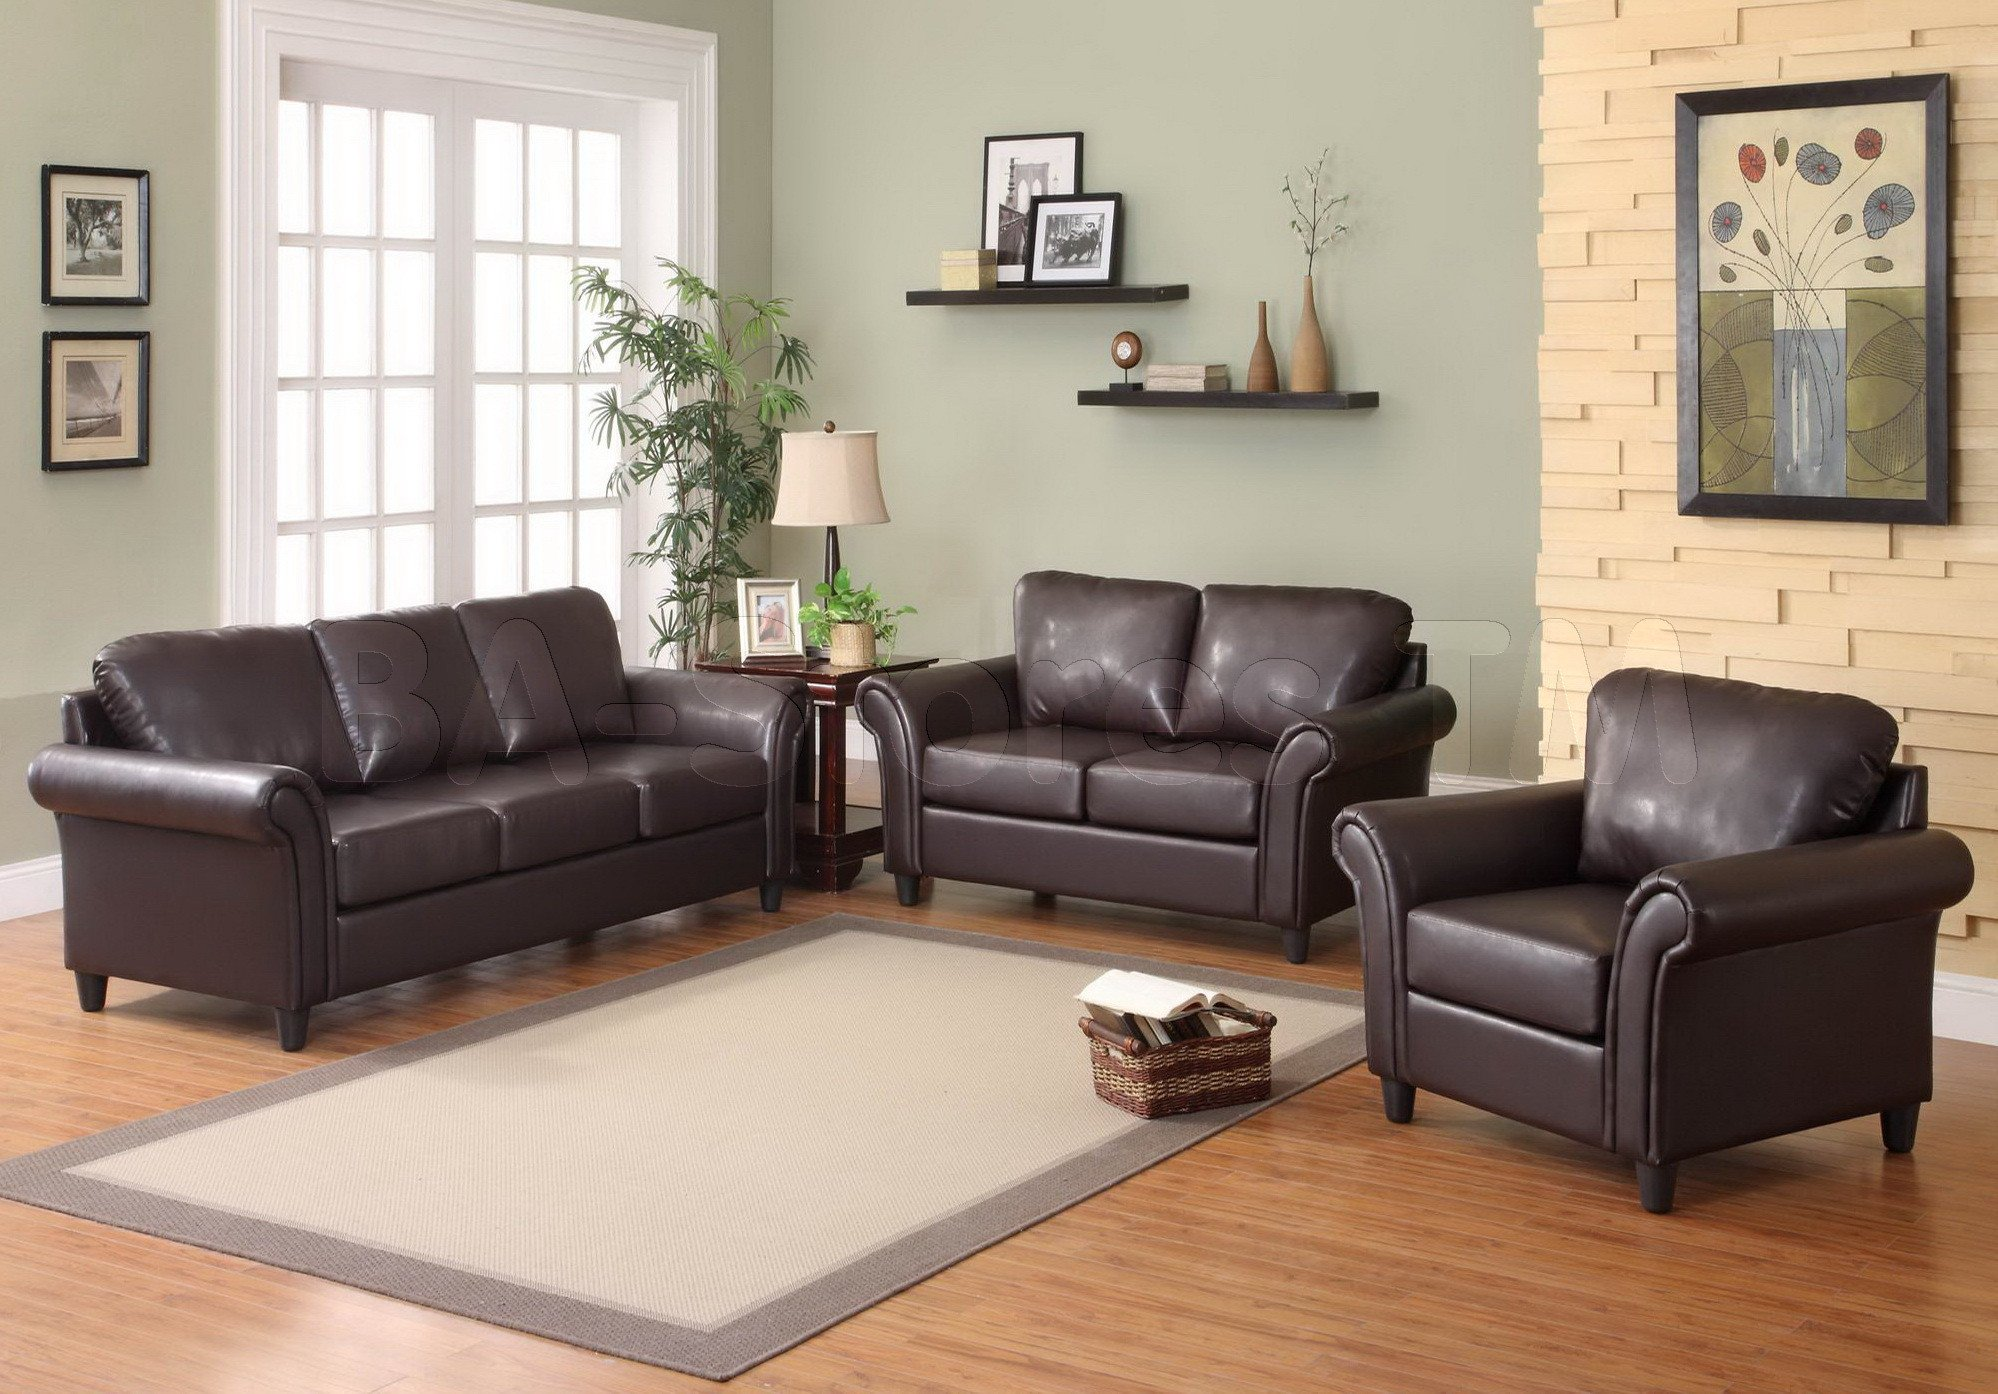 Brown Living Room Decor Ideas Beware there are 21 Dark sofa Living Room Designs Will